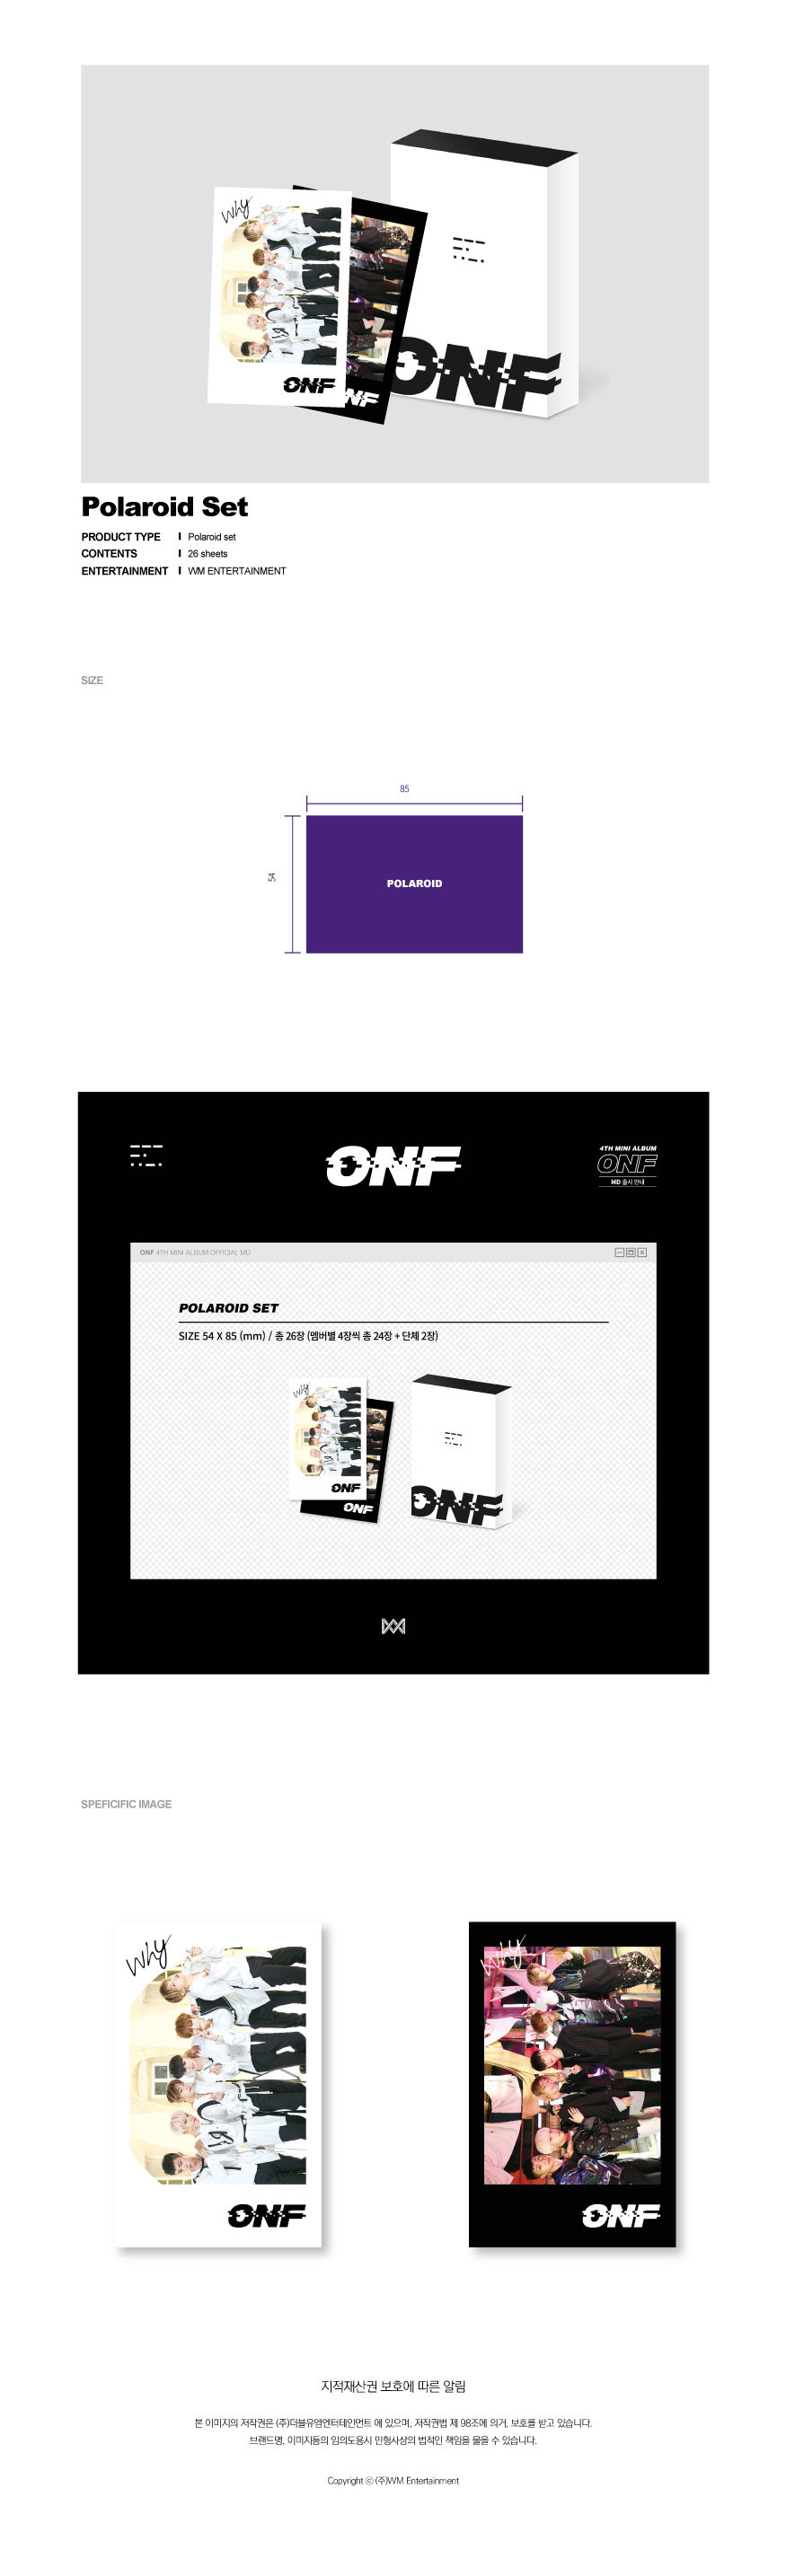 onf_official_polaroid